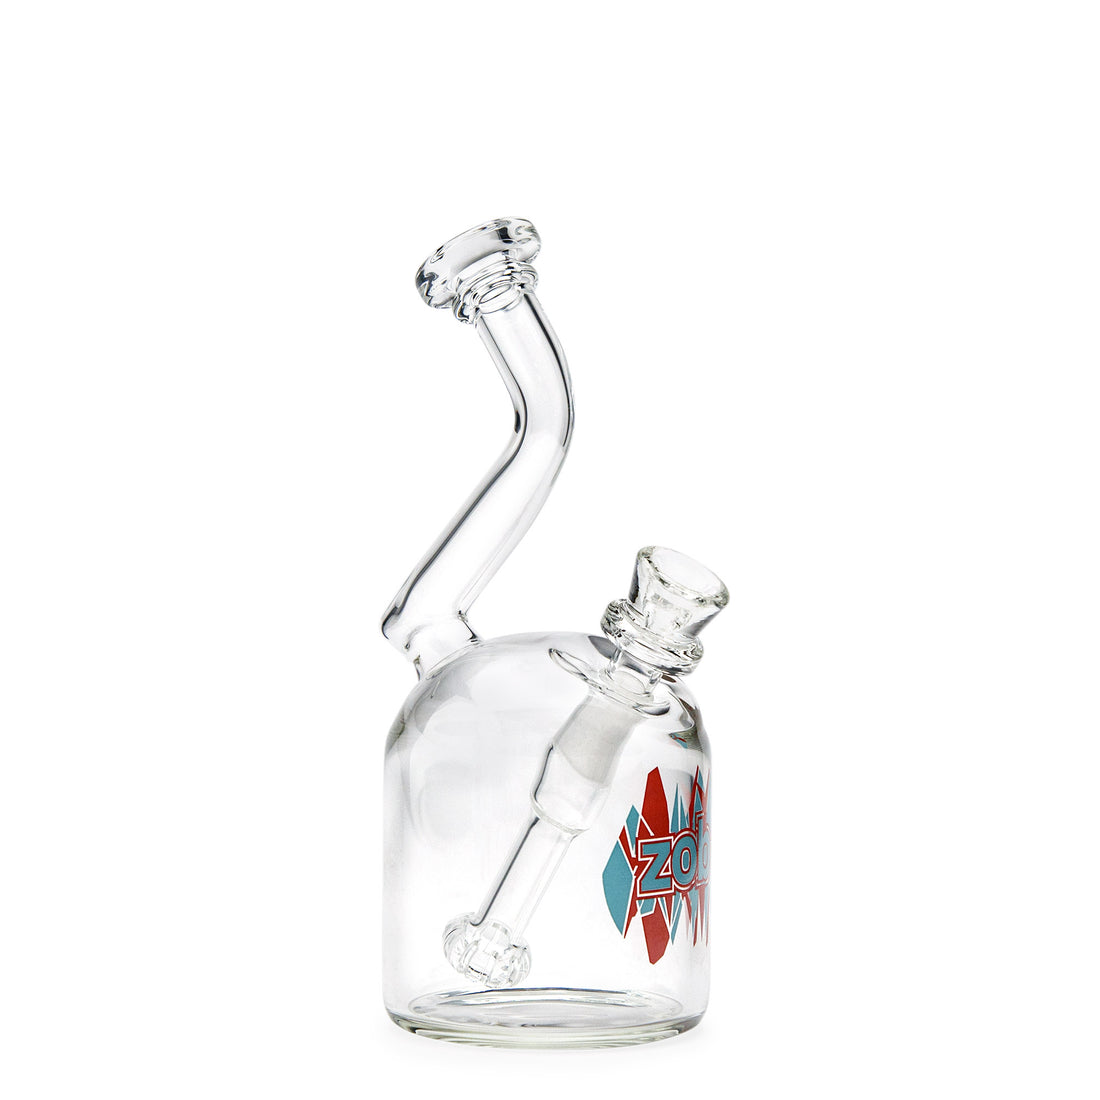 Zob 7in Bubbler w/Fixed Showerhead Downstem - 420 Science - The most trusted online smoke shop.